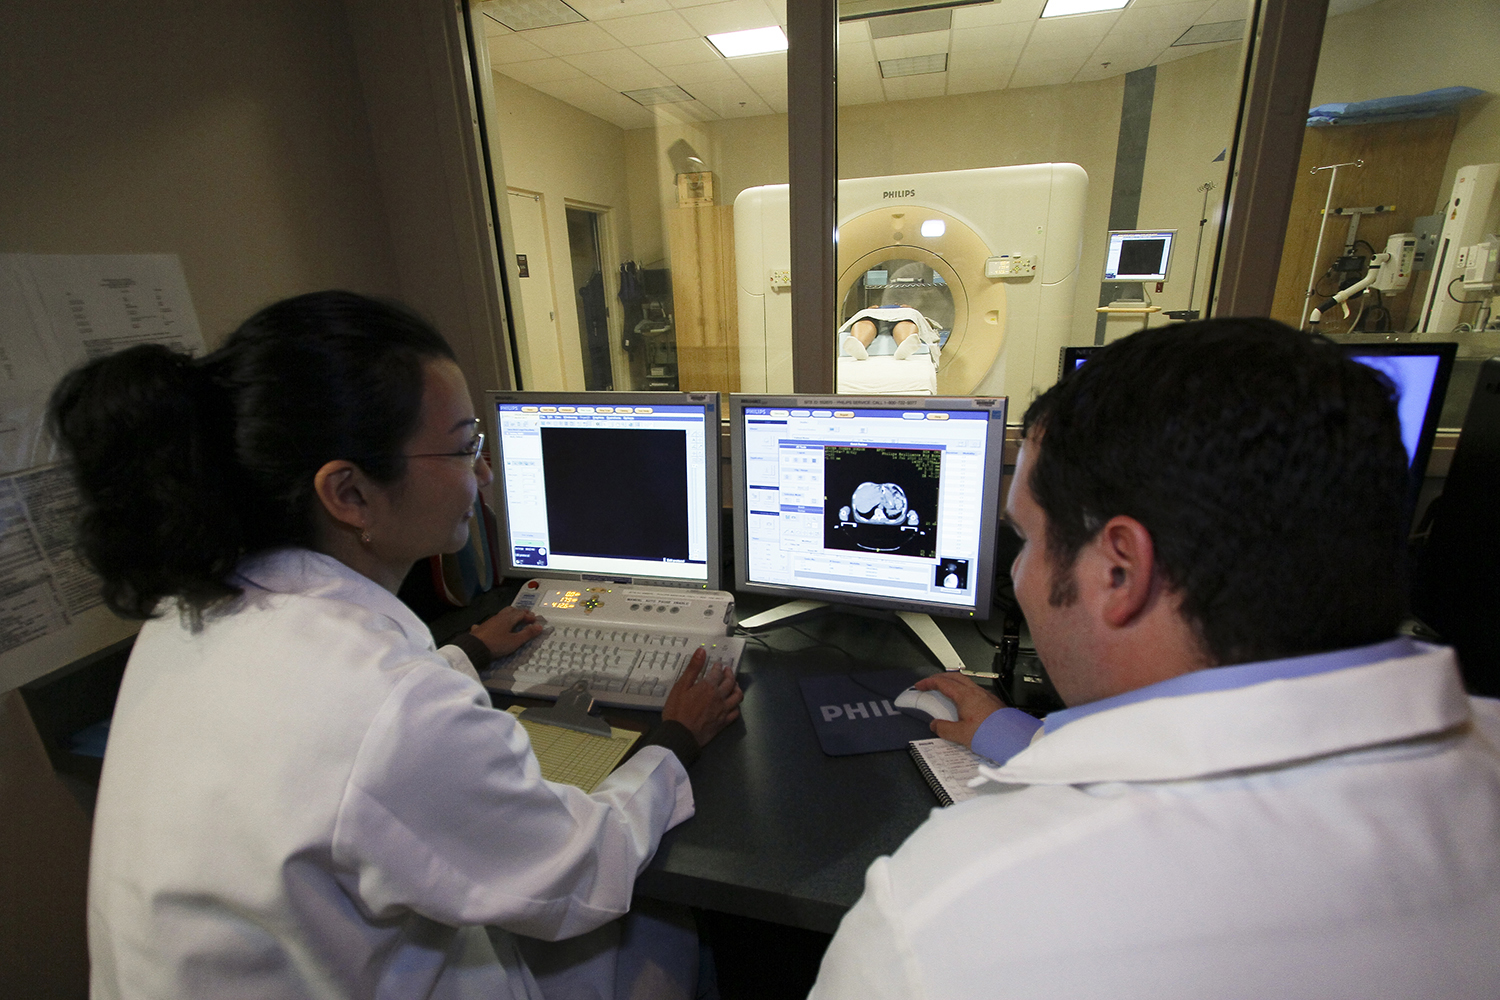 This is a picture of two radiologists viewing a CT scan on a computer as the scan is being conducted.